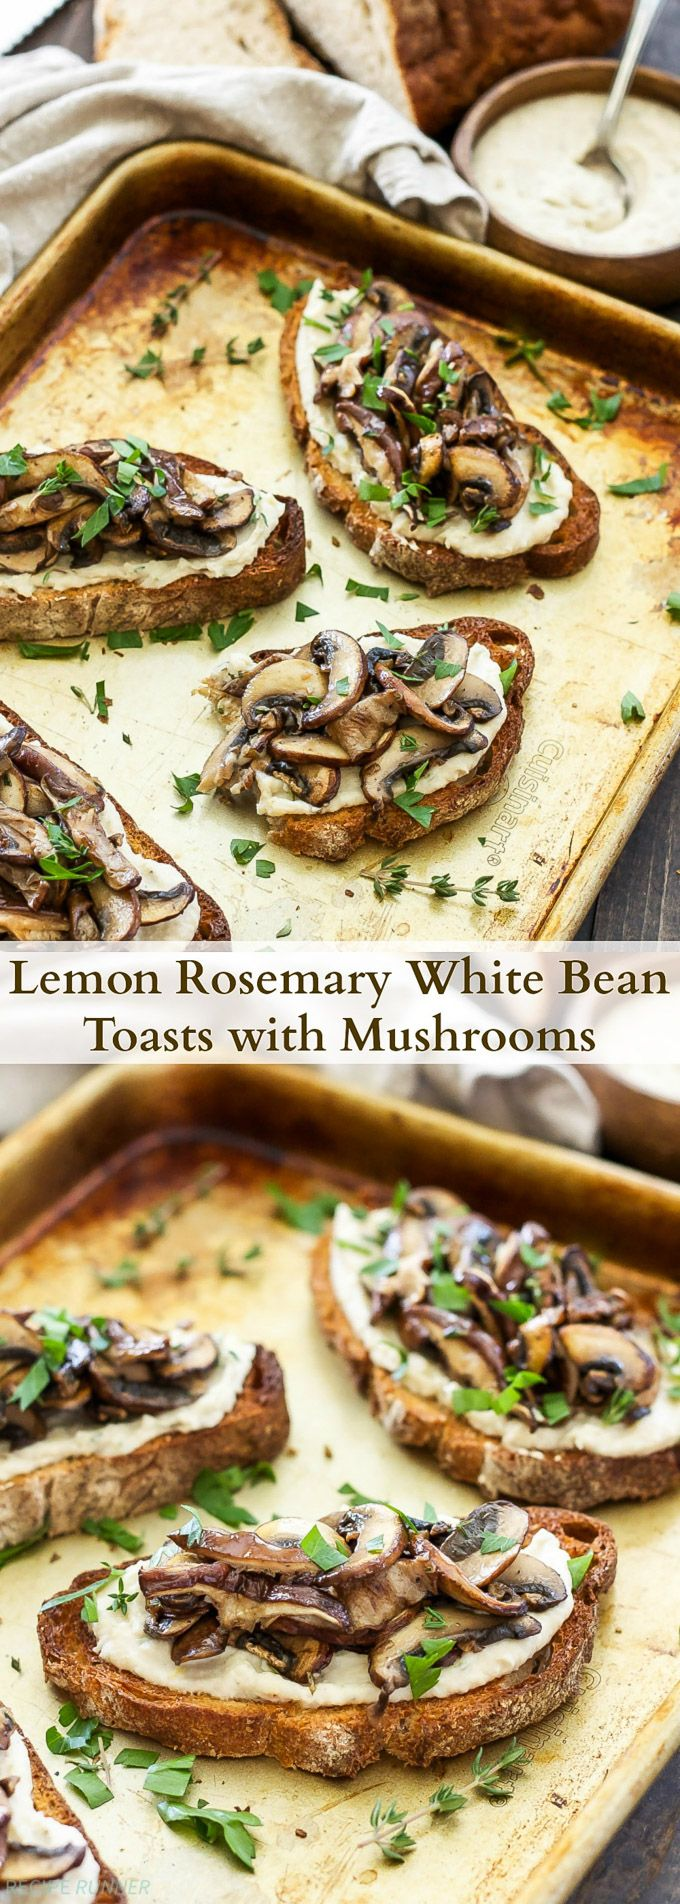 Lemon Rosemary White Bean Toasts with Mushrooms | Creamy white beans spread on…